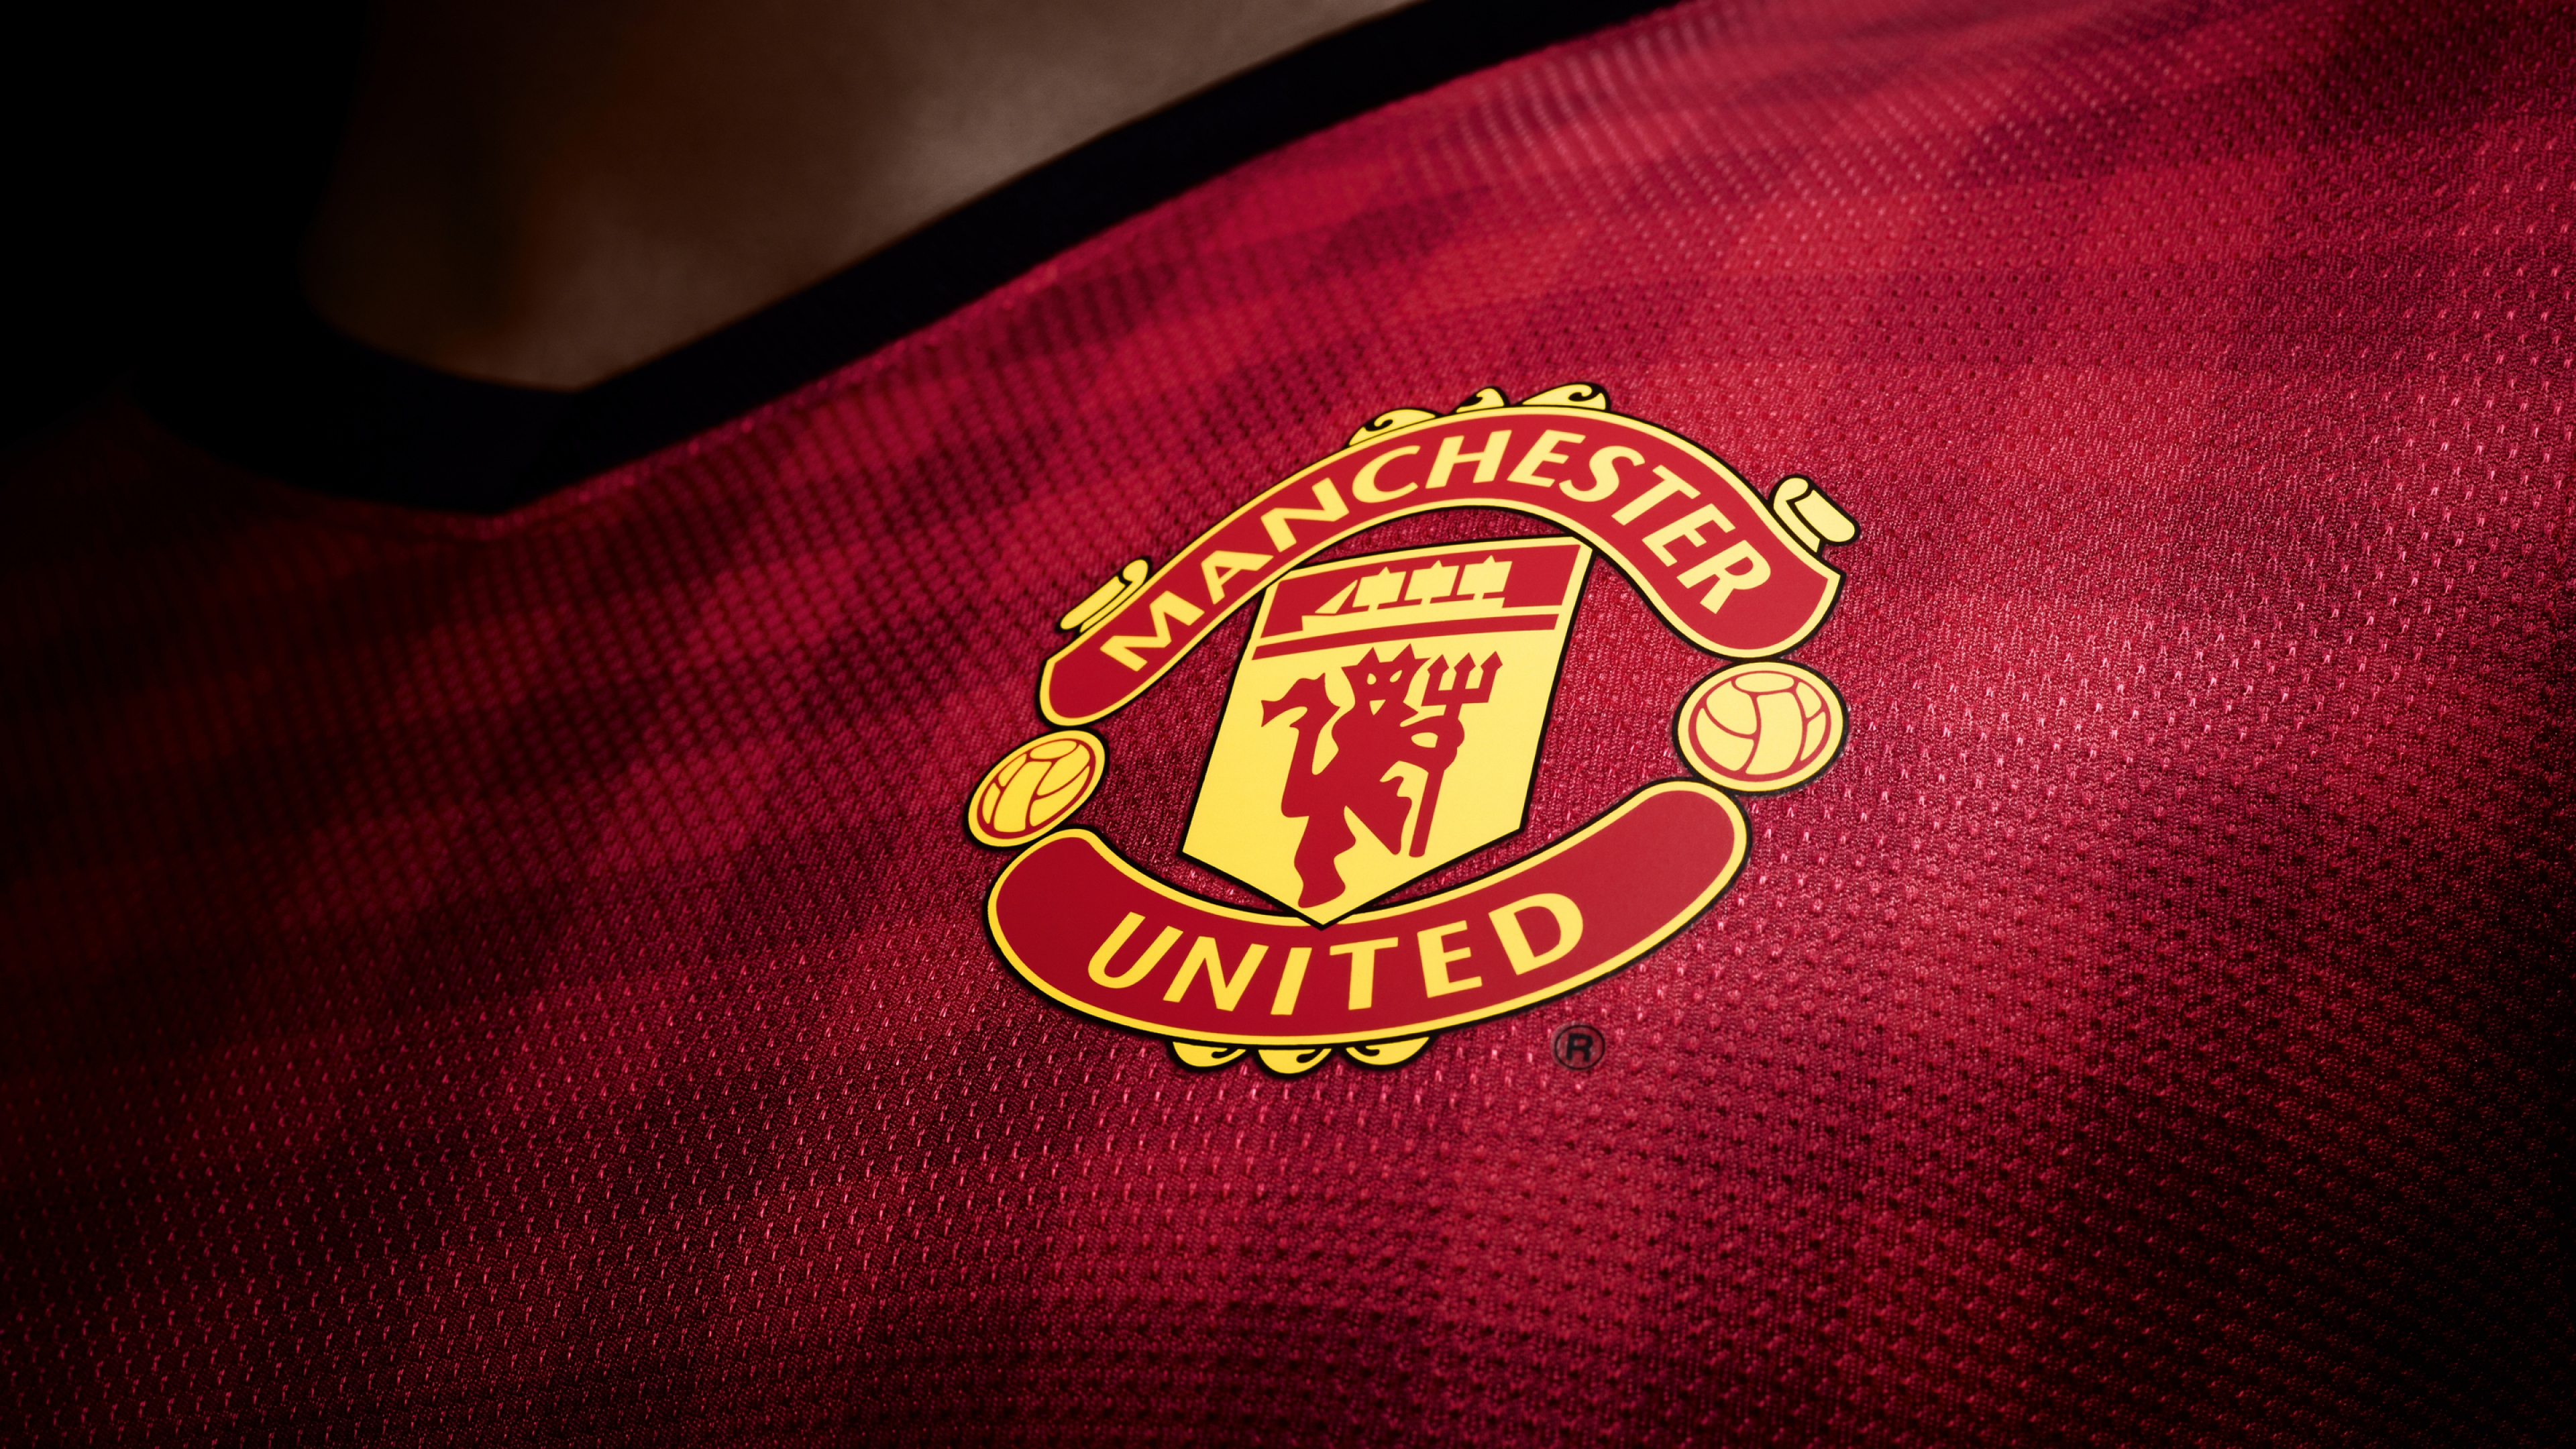 manchester united logo 1538786685 - Manchester United Logo - soccer wallpapers, mc wallpapers, manchester united wallpapers, football wallpapers